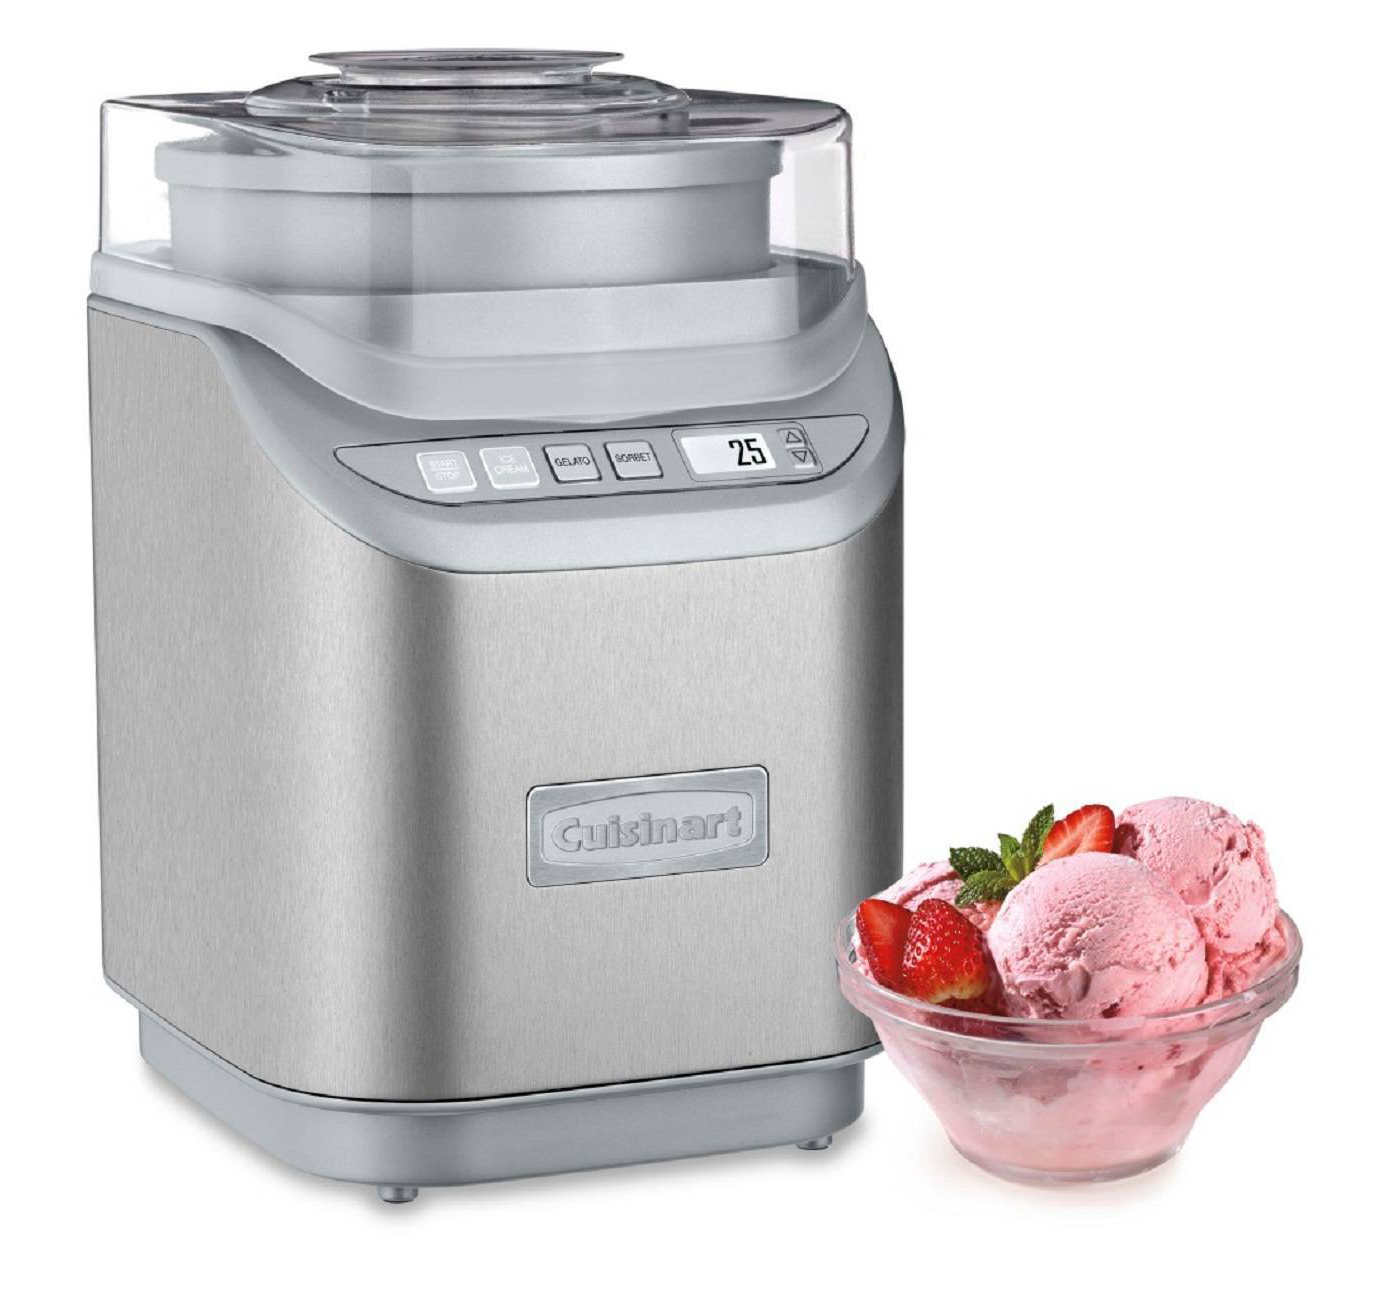 Cuisinart Electronic Ice Cream Maker - Stainless Steel ICE-70